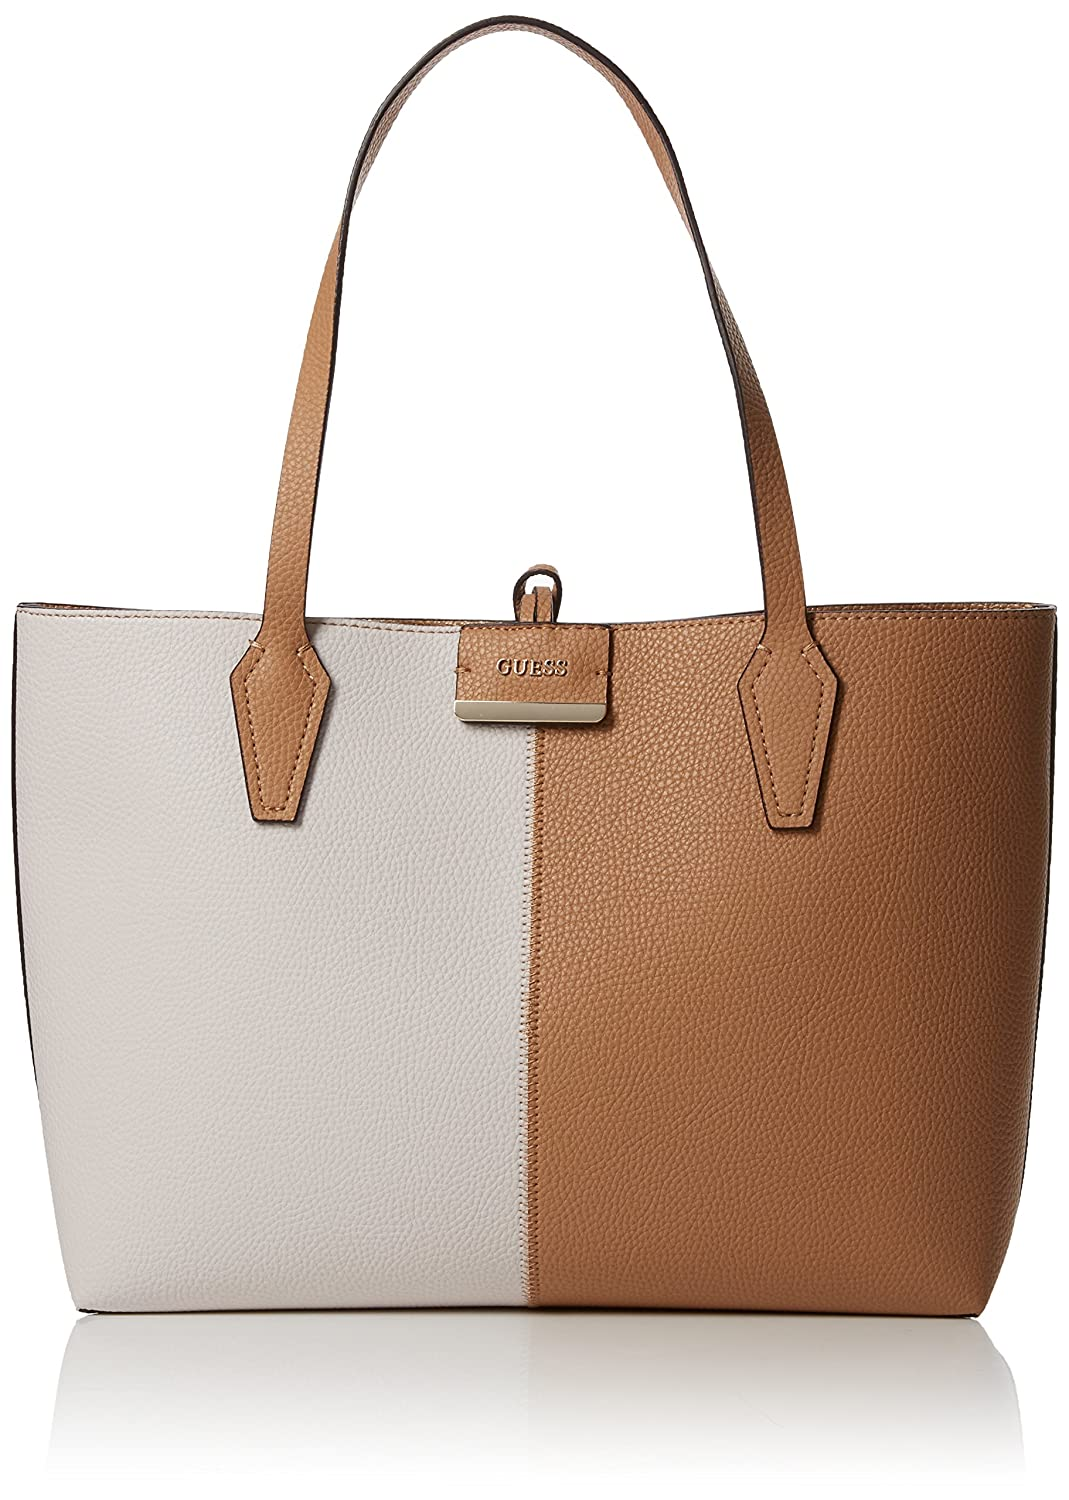 Guess Damen Bobbi Schultertasche, Multicolore (Tan Gold), 12.5 x 27 x 42.5 cm